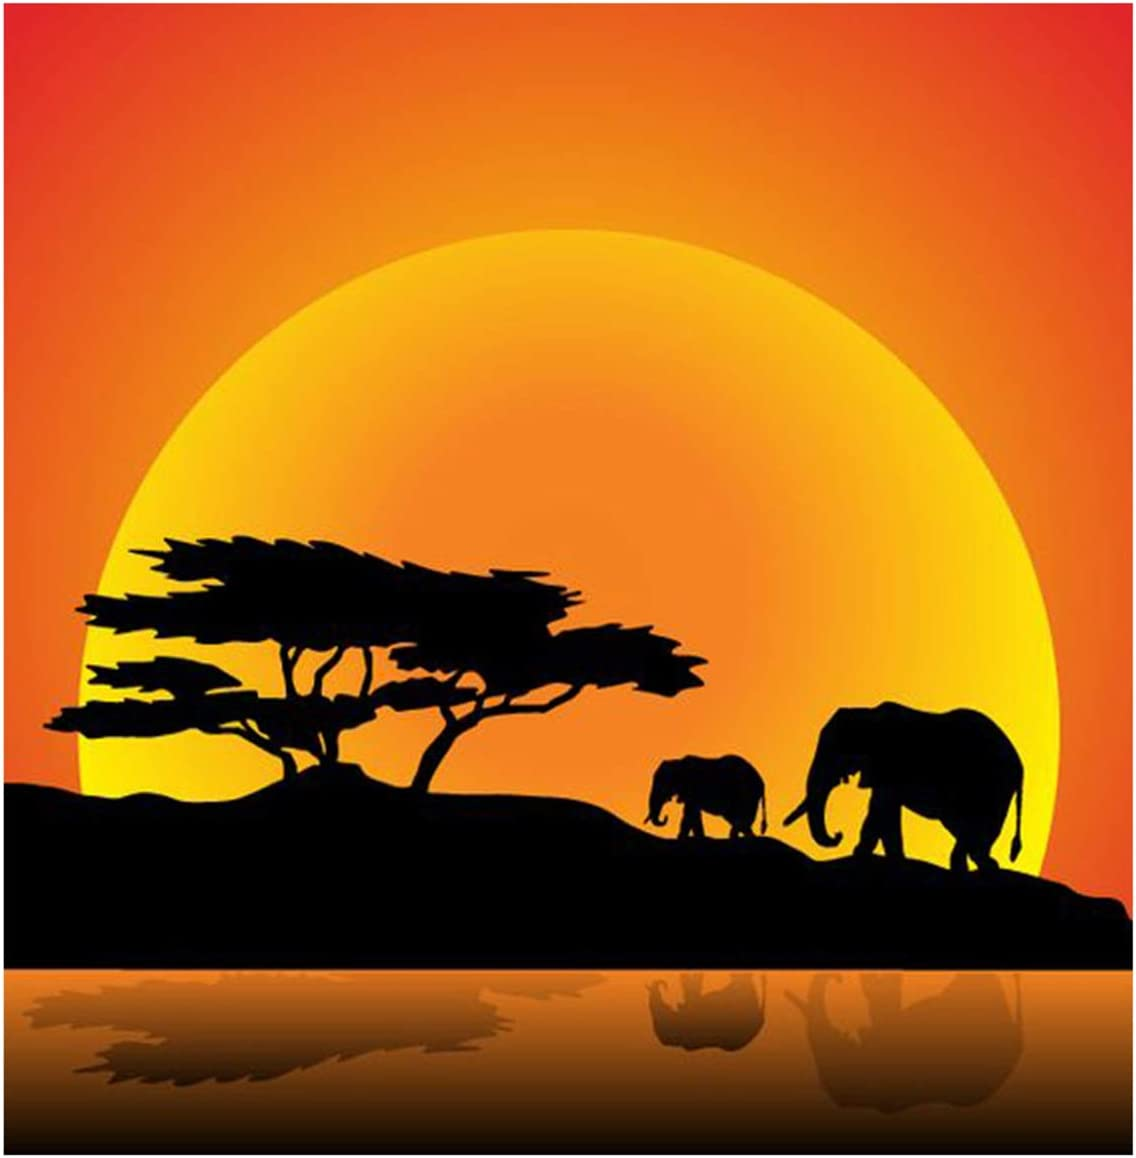 DIY 5D Diamond Painting Beach by Number Kits Full Drill Cross Stitch Crystal Rhinestone Embroidery Pictures Arts Craft for Adults Wall Decor Gift Sunset Elephant 30x30cm